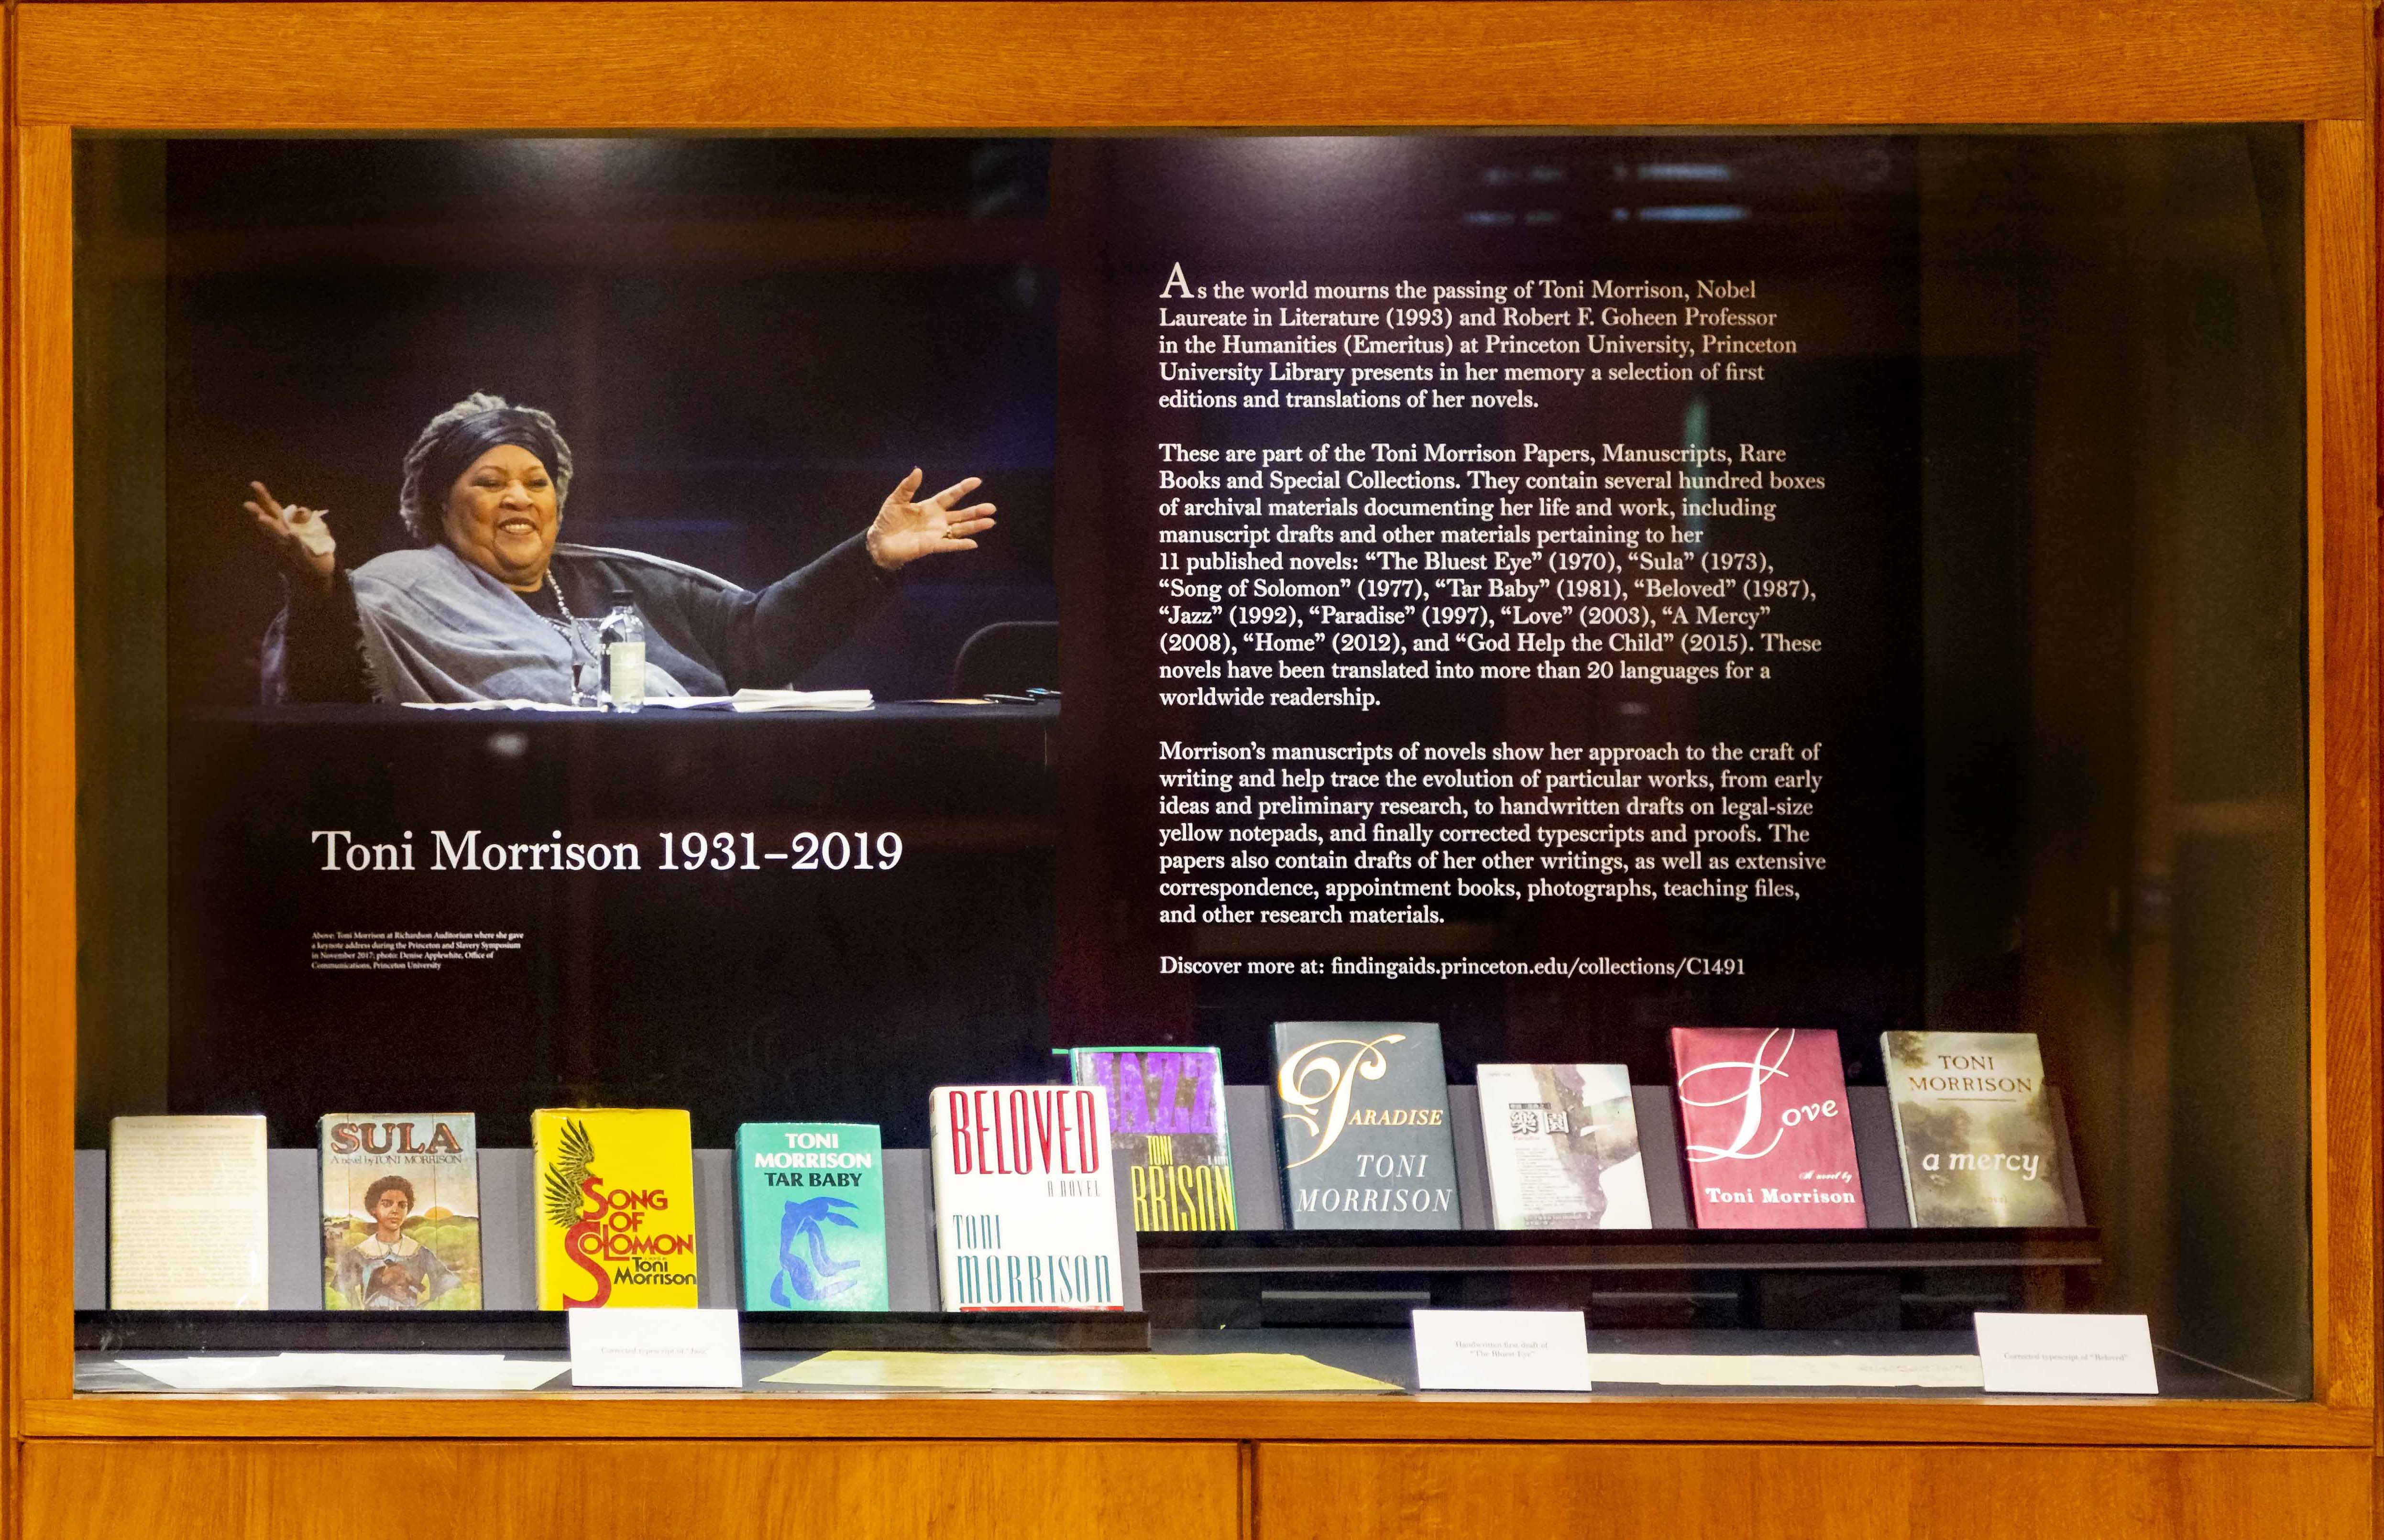 Toni Morrison exhibition at Firestone Library